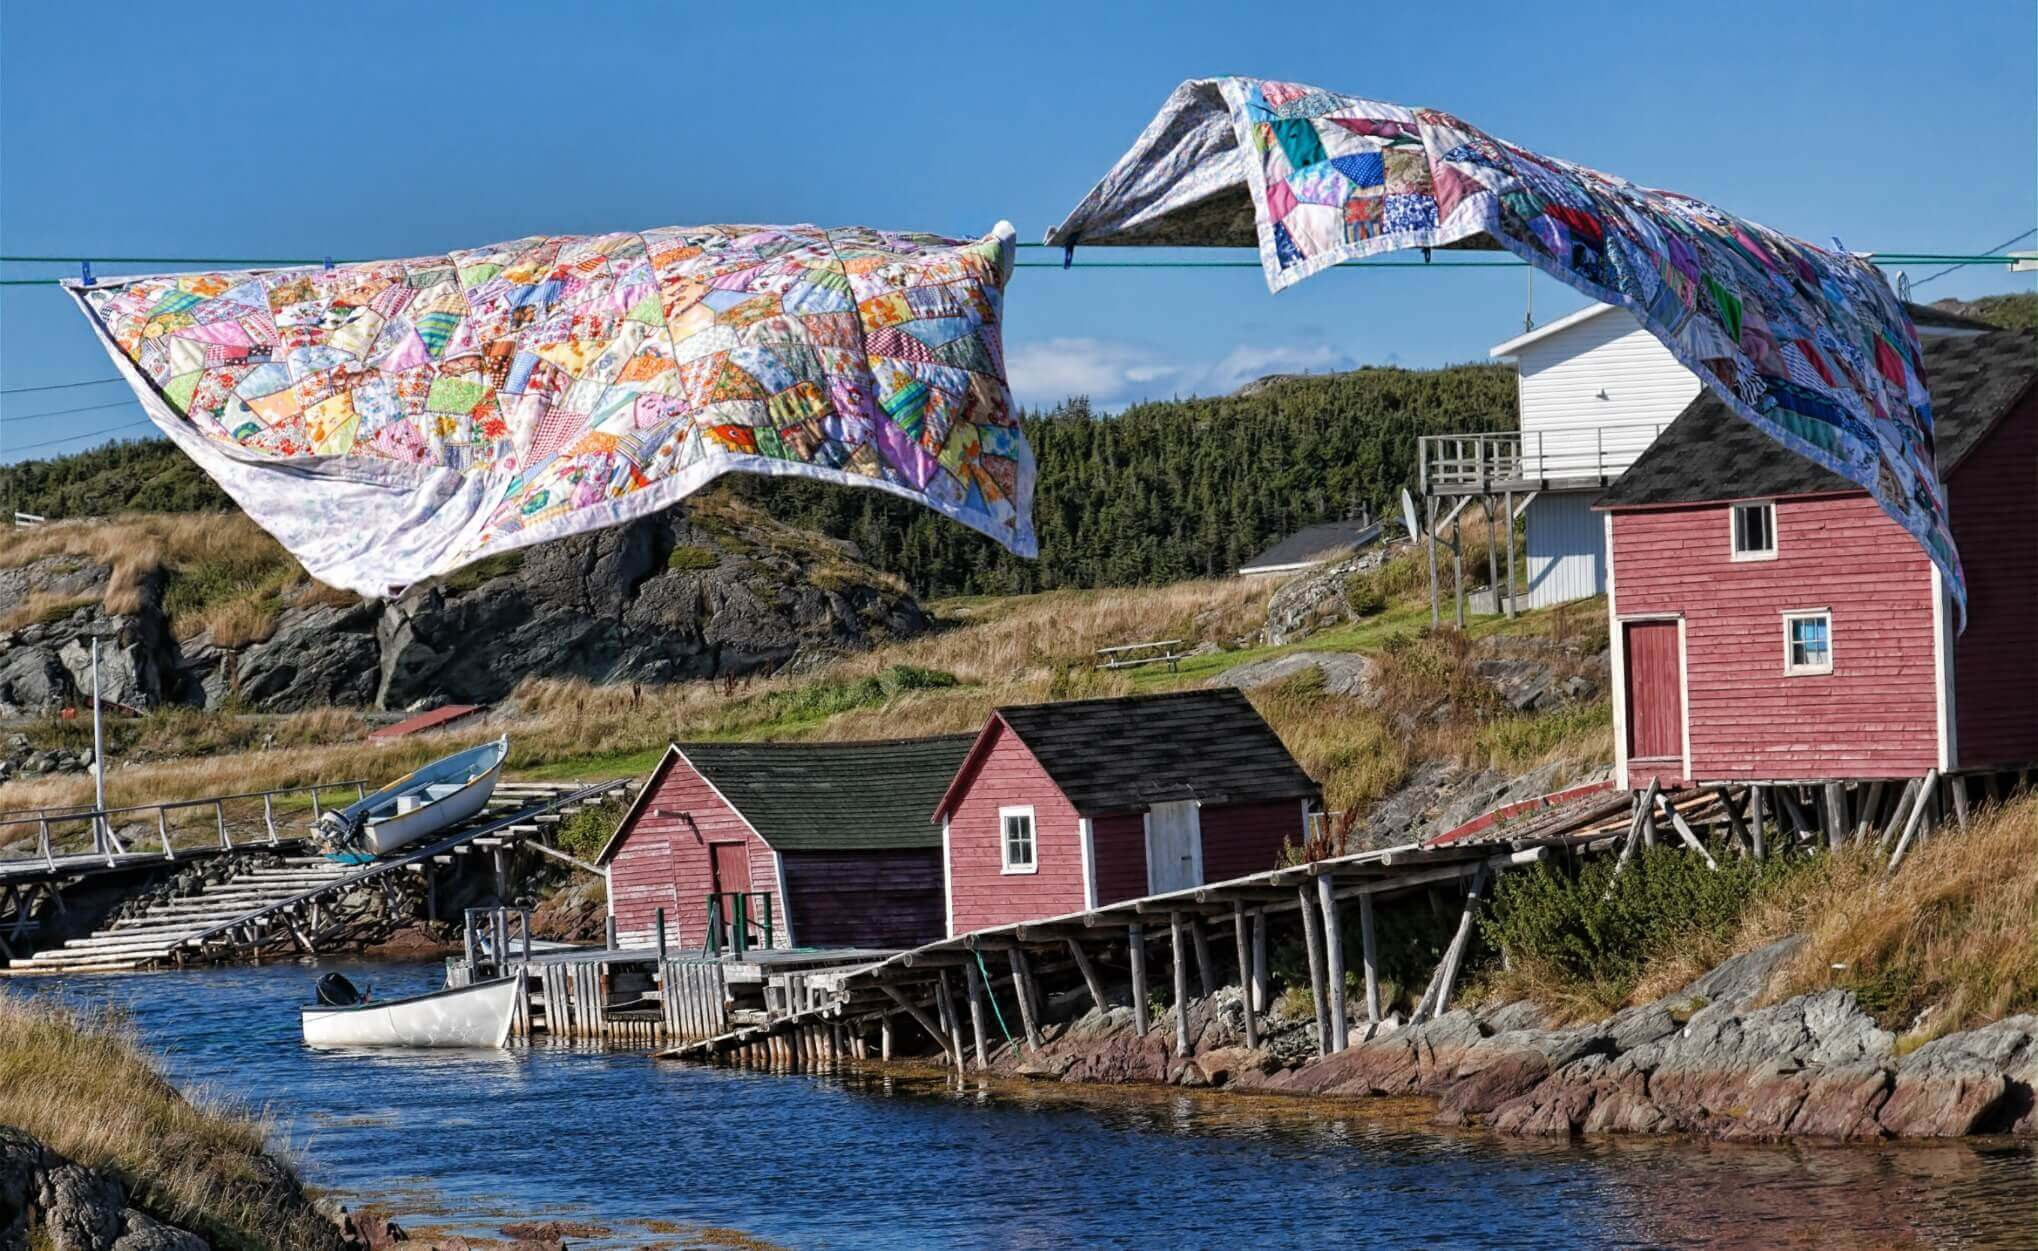 Quilts flapping on the clothesline